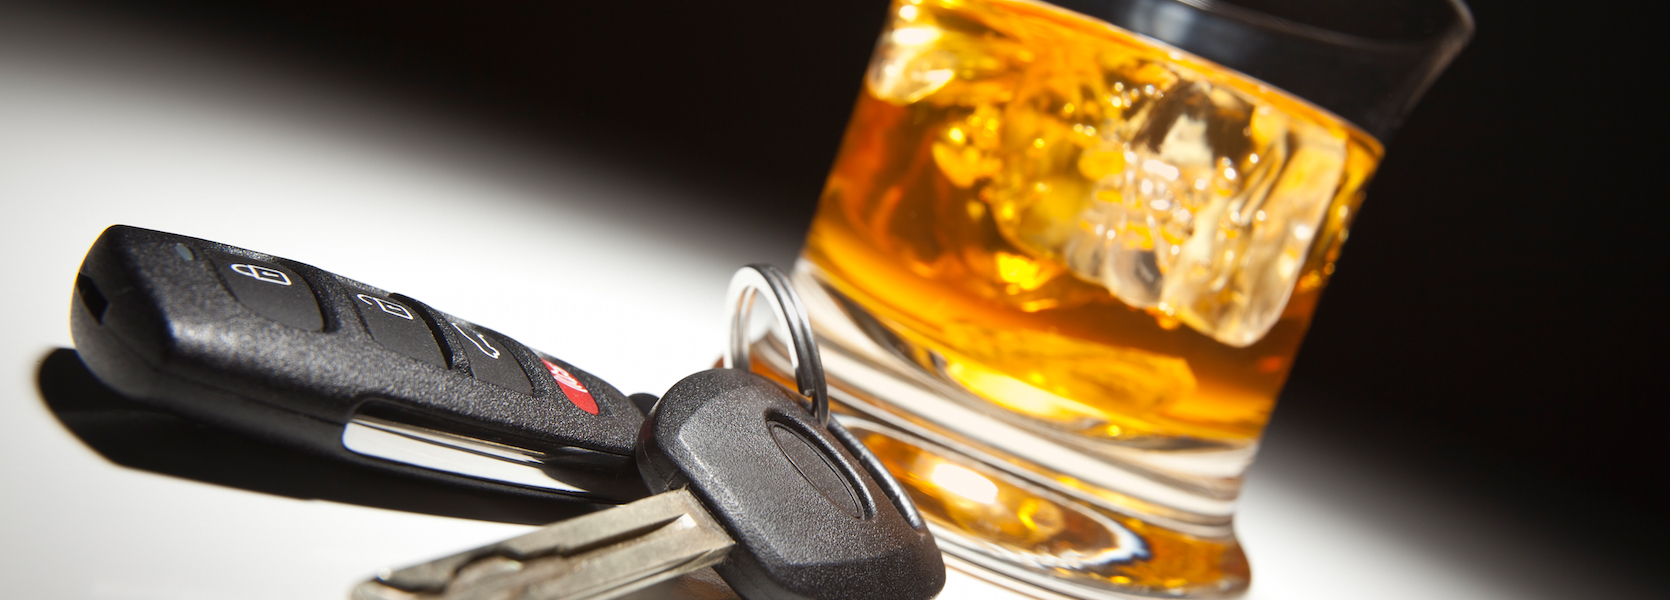 Drunk Driving and DUI Attorneys in Murfreesboro, TN